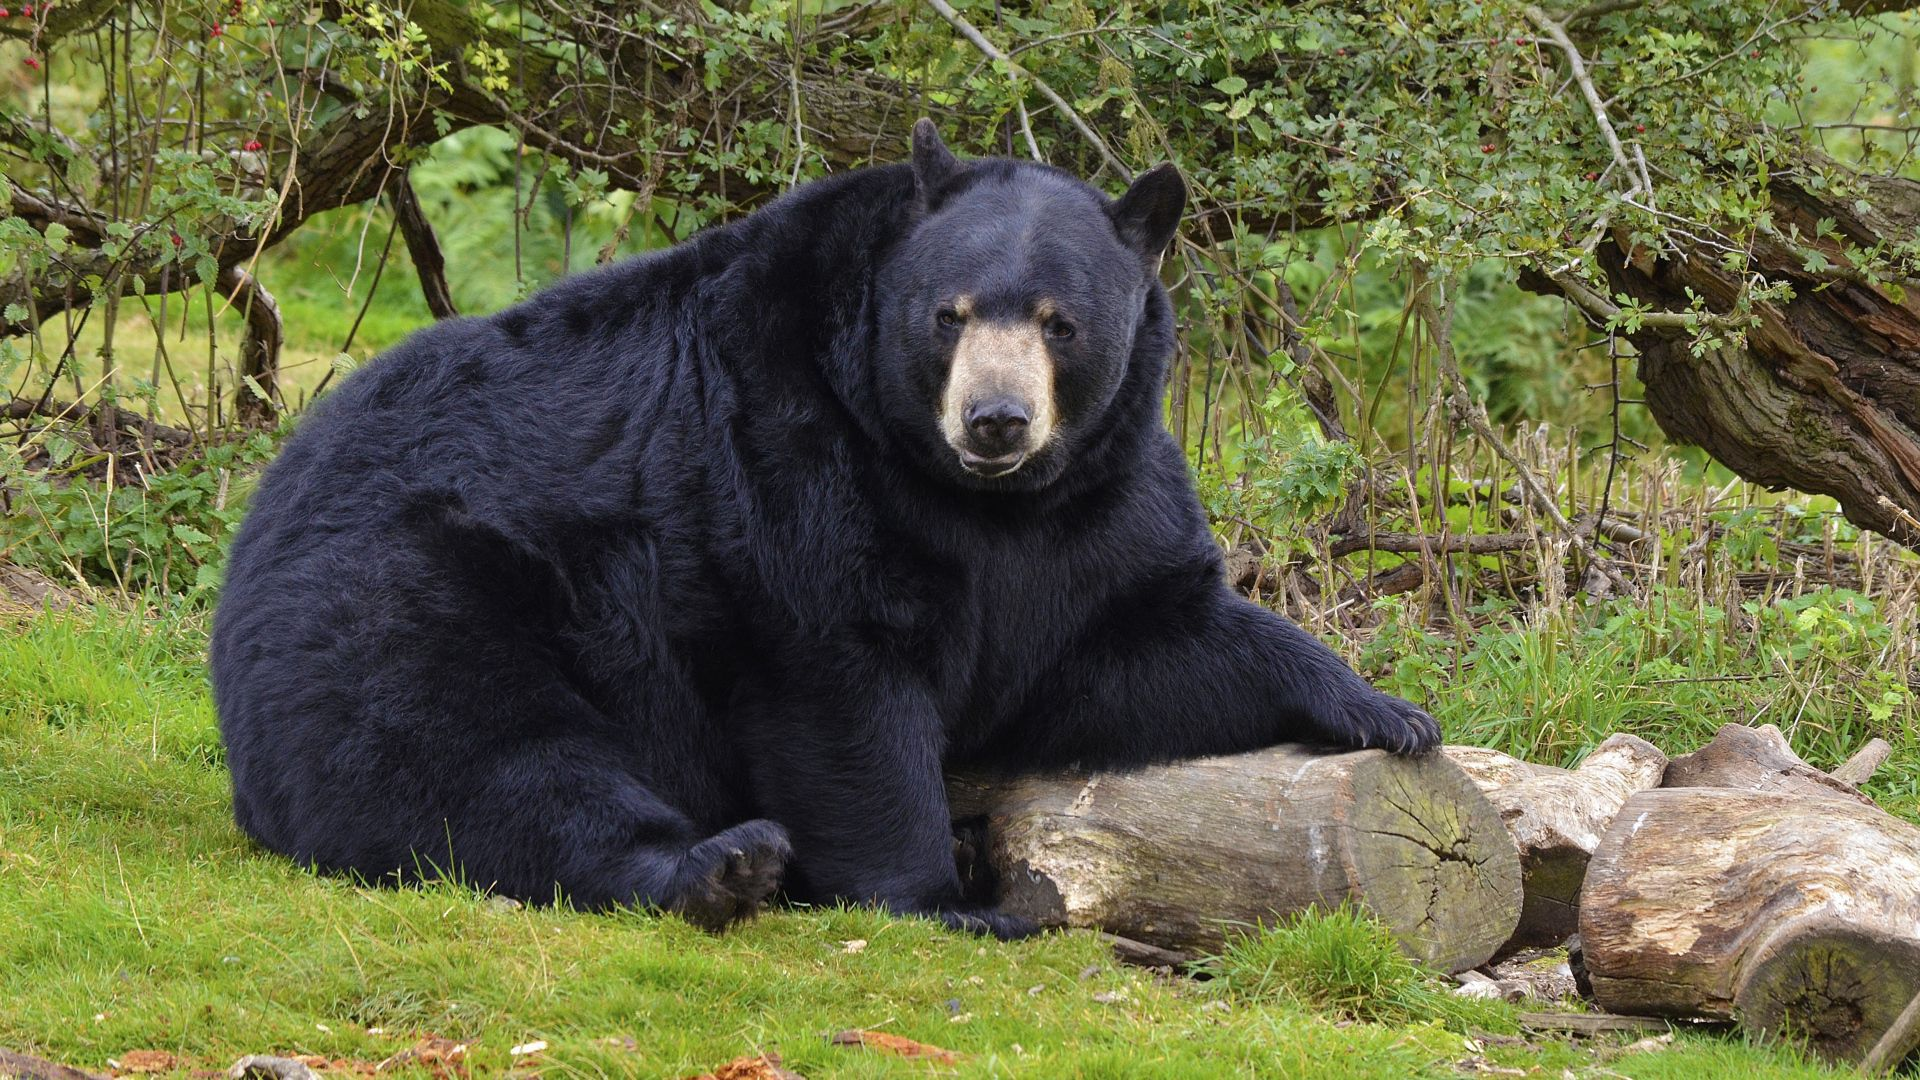 Black Bear Images